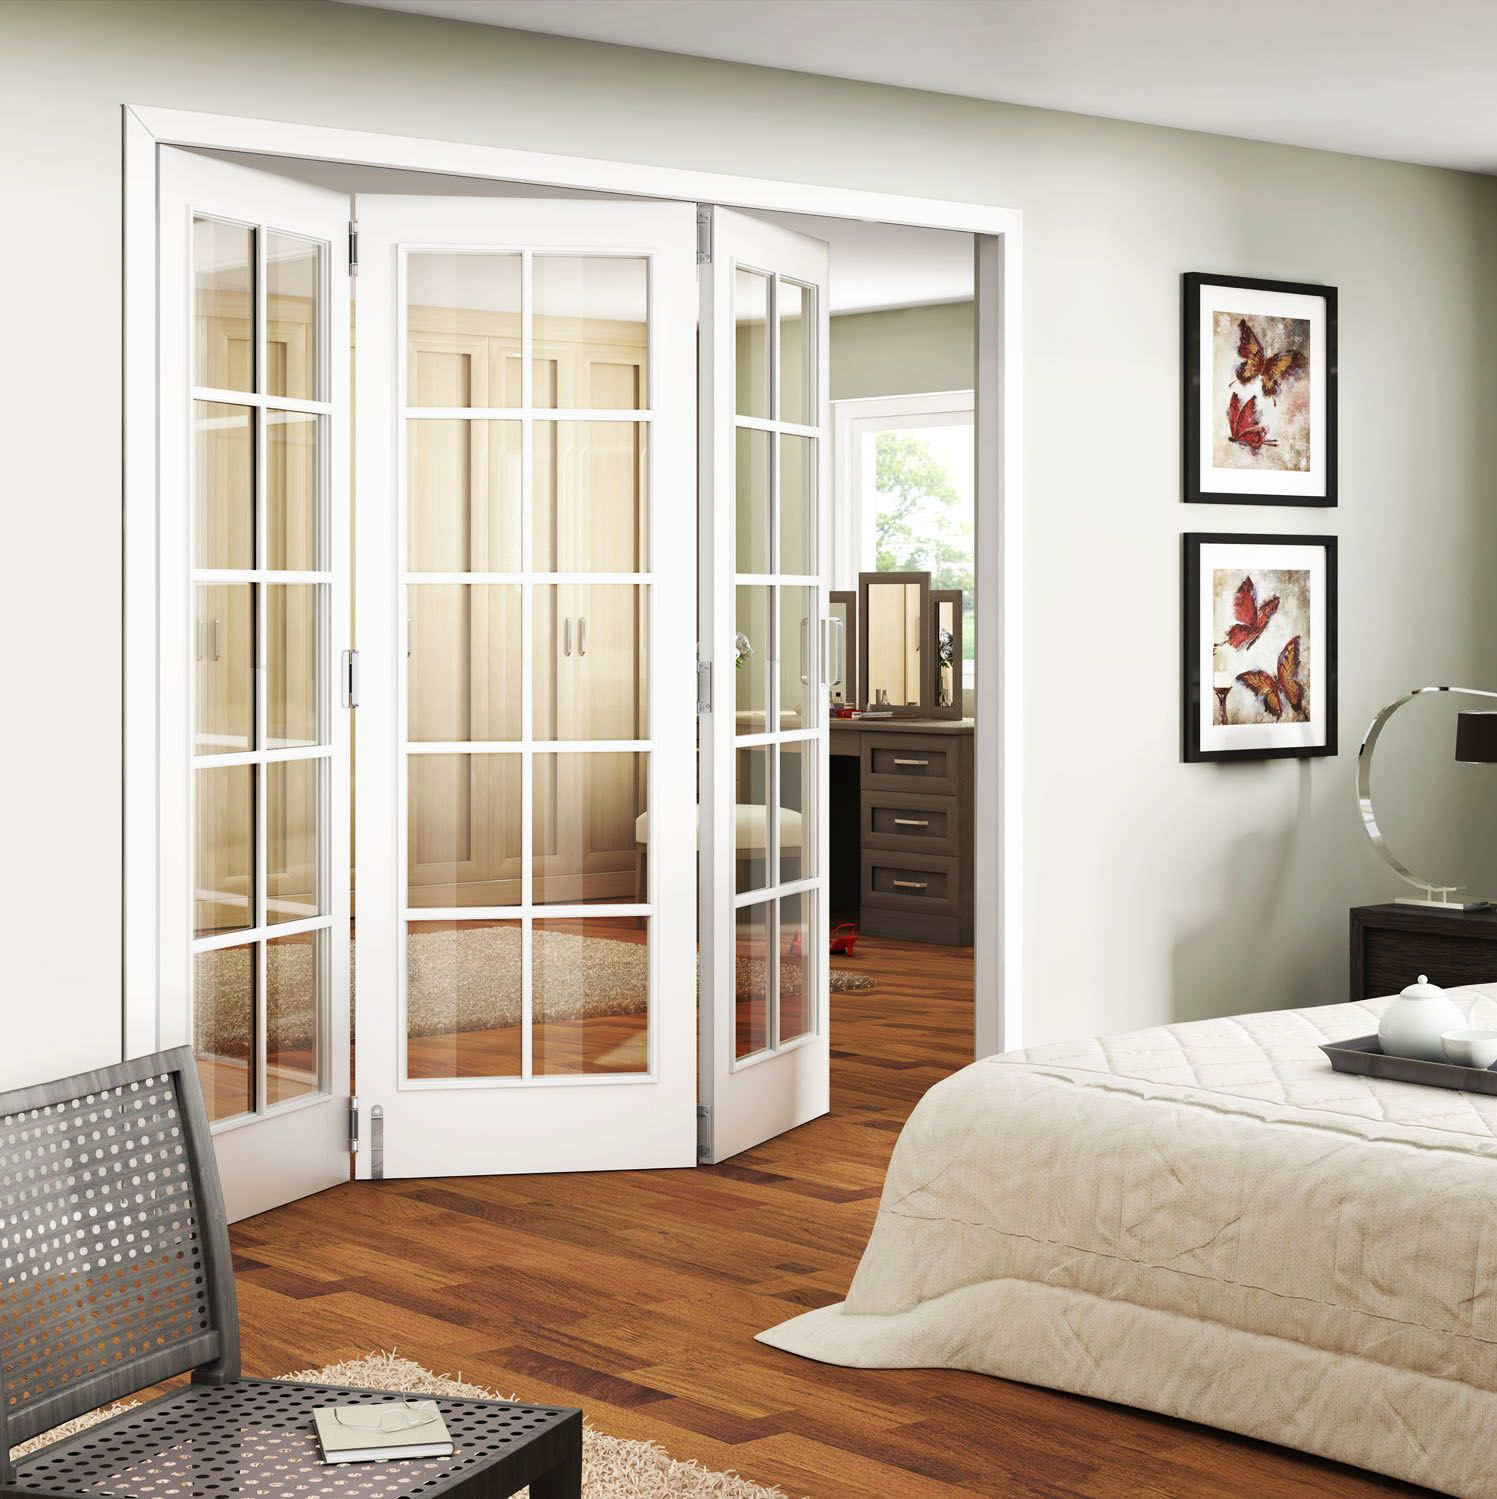 13716 Trifold Interior Sliding French Doors In Bedroom Jpg 1497 1499 Interior Sliding French Doors French Doors Interior Sliding French Doors